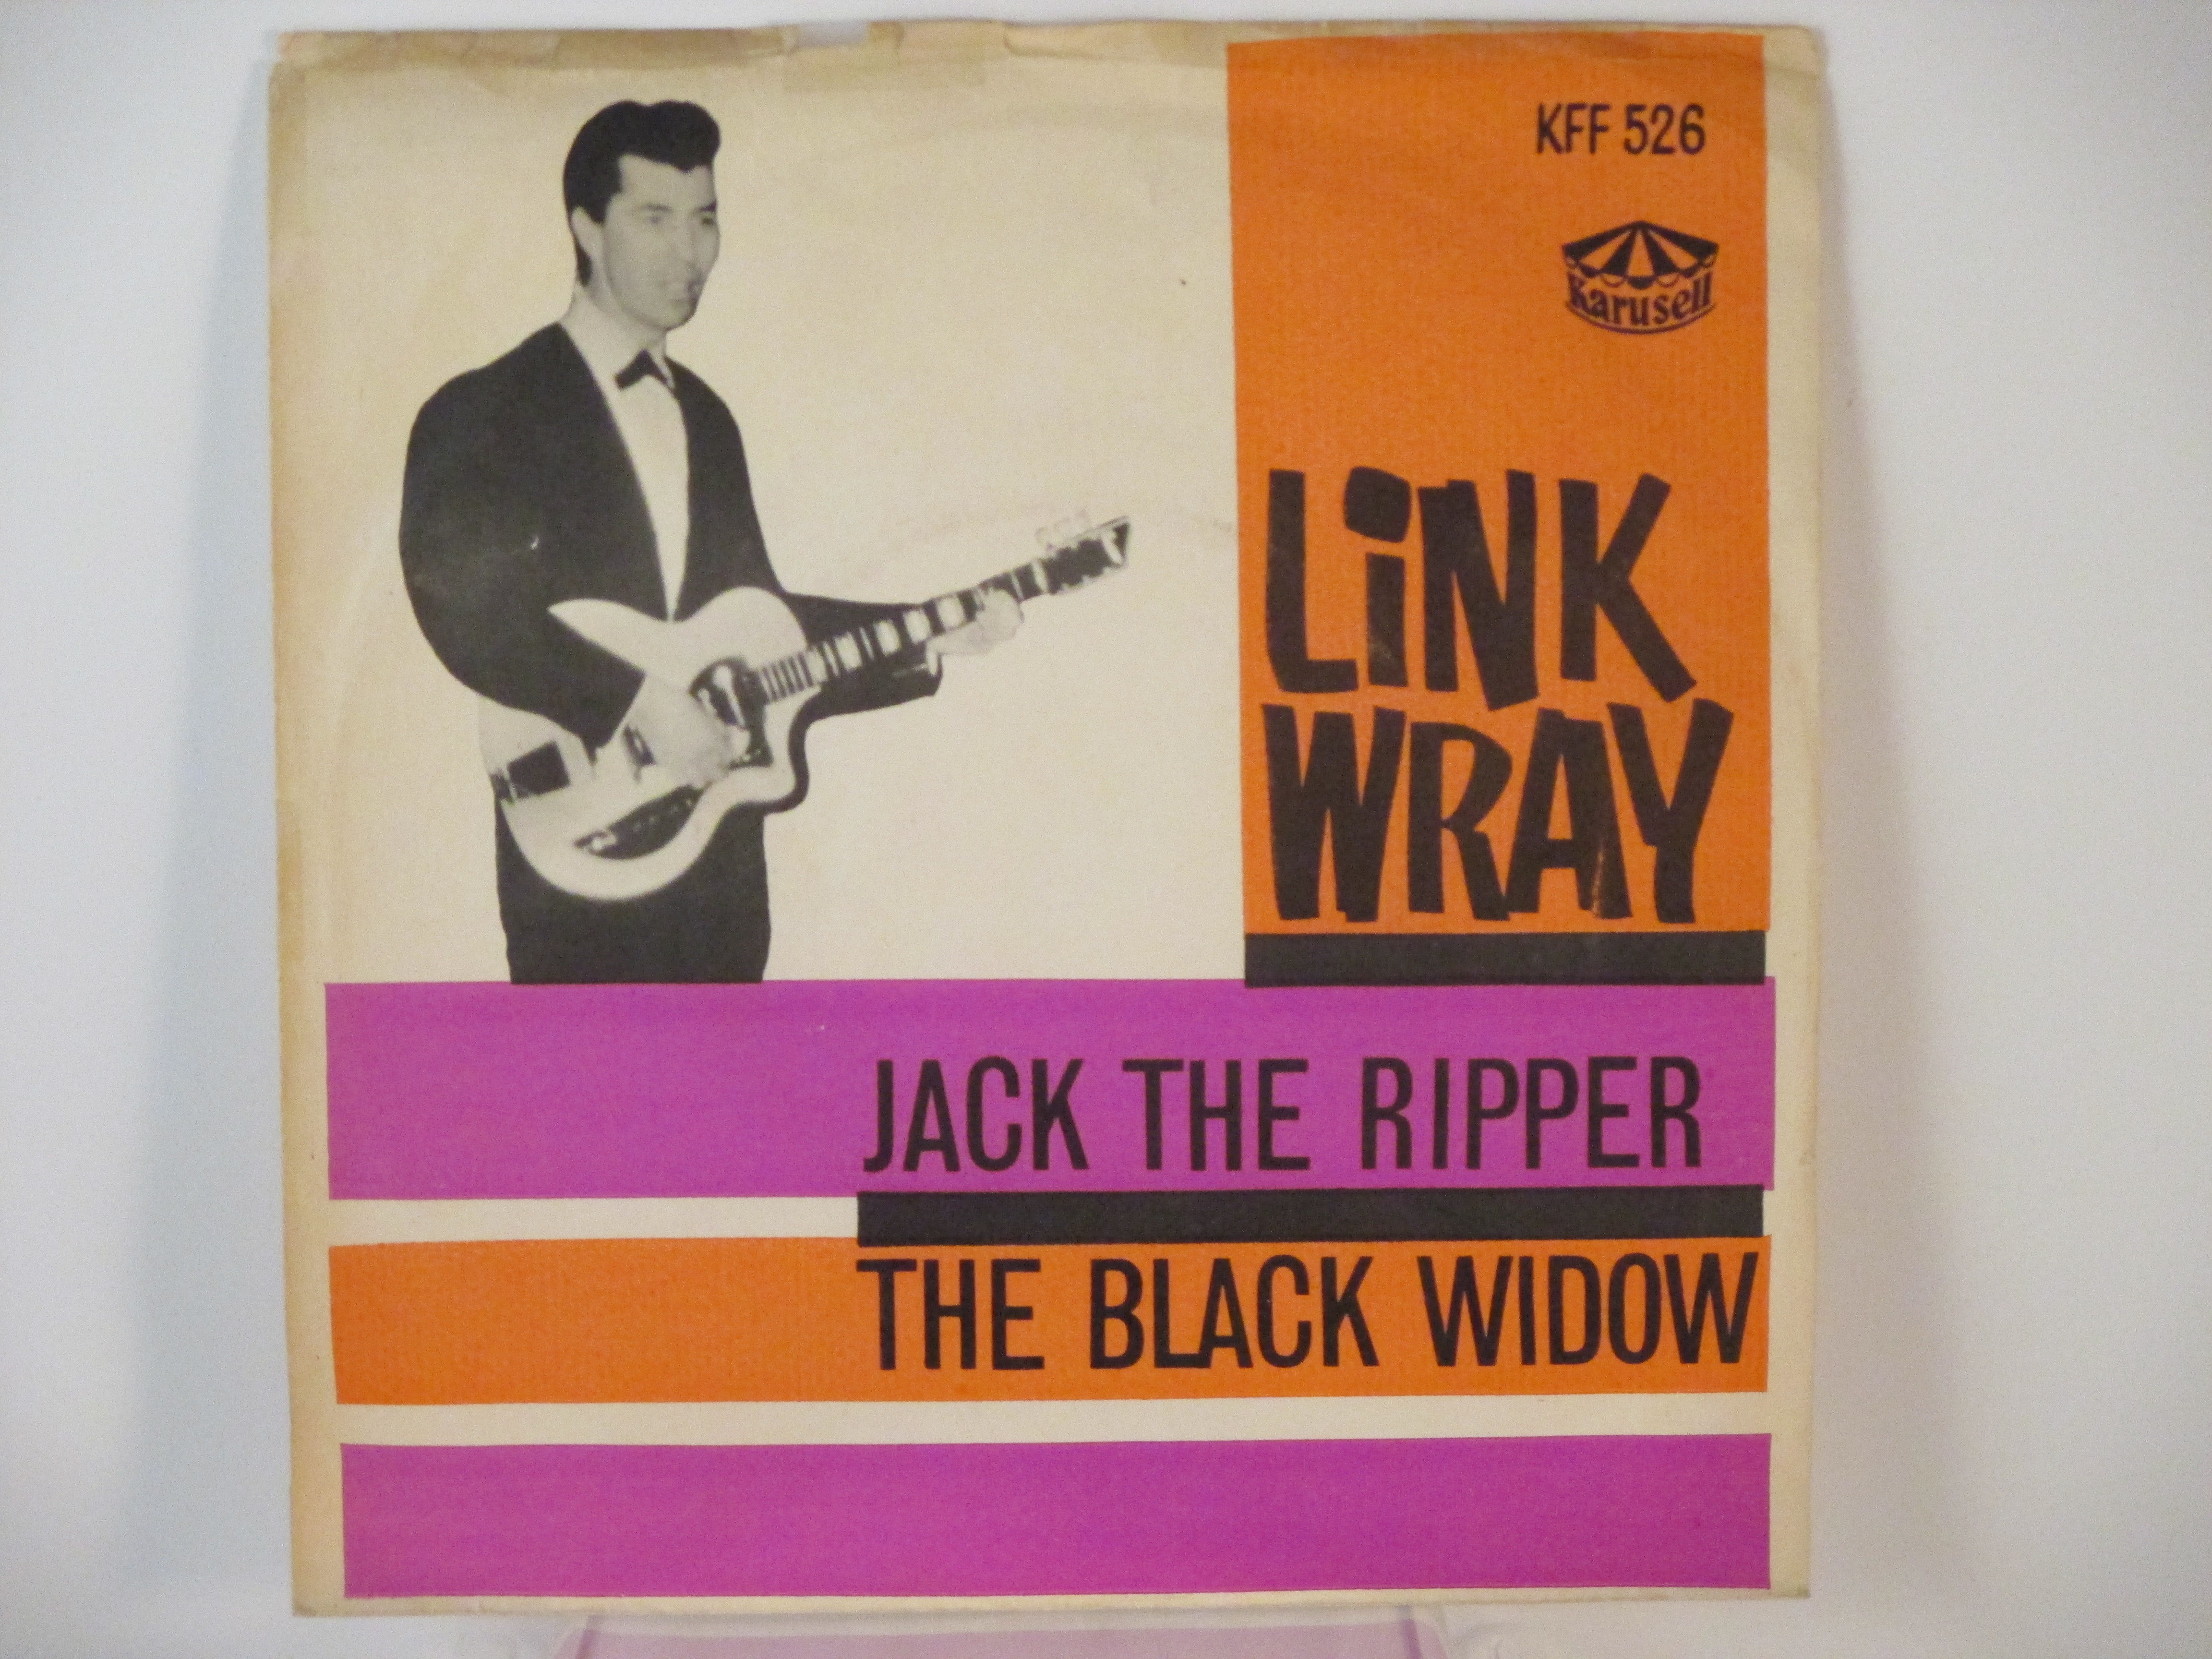 LINK WRAY : Jack the ripper / The black widow